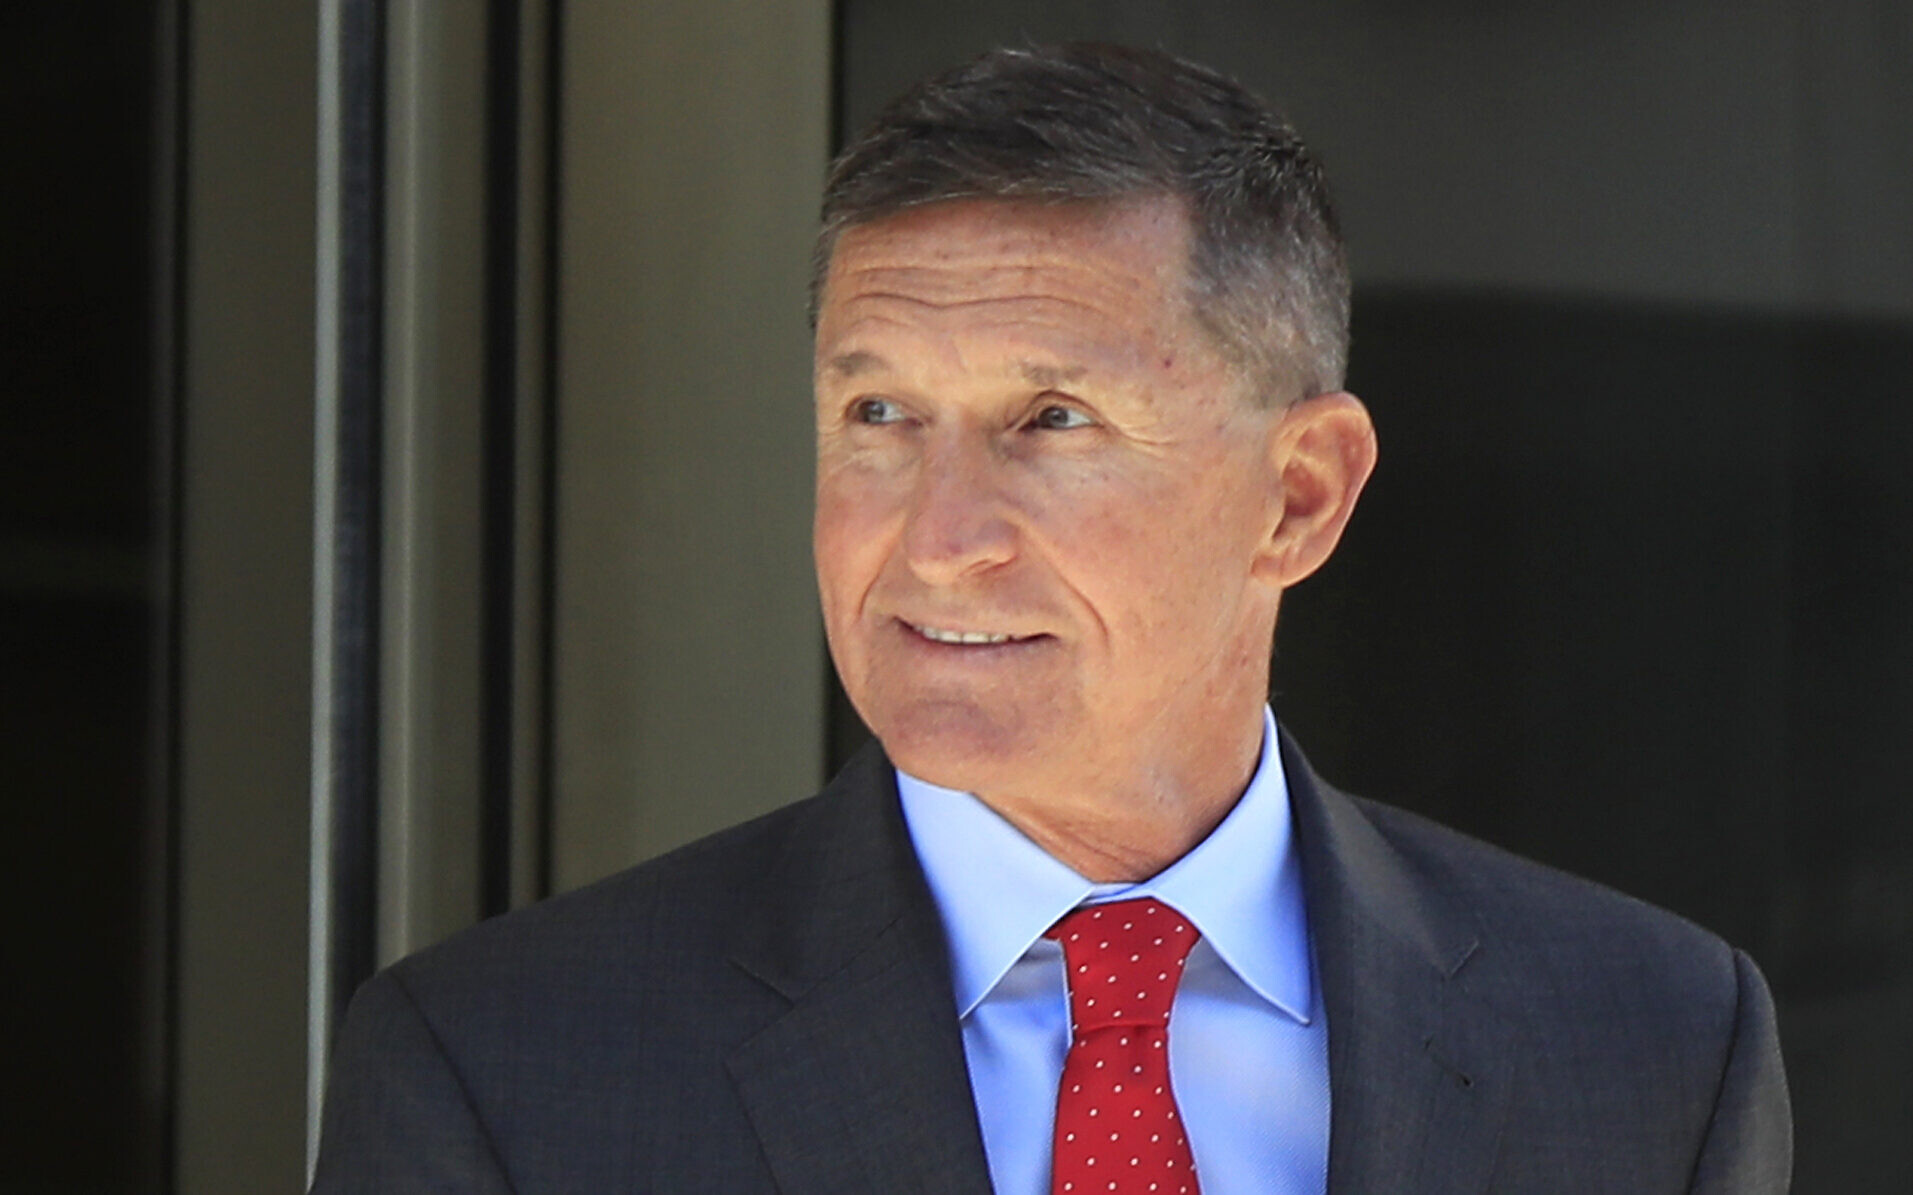 Attorney General: Dropping Flynn Case 'Upheld the Rule of Law'